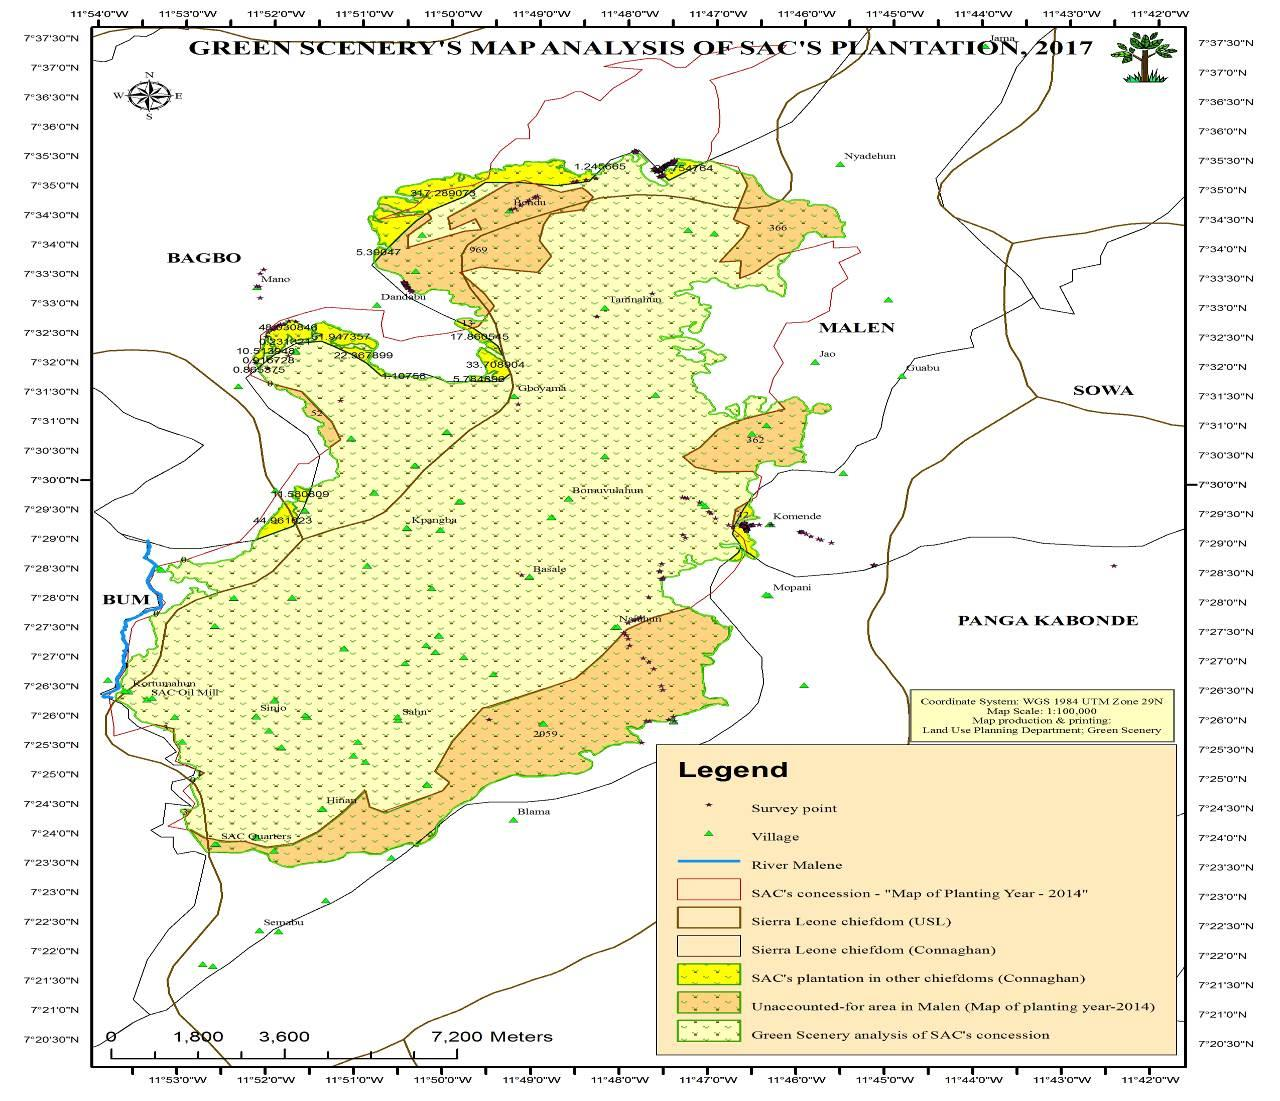 Spatial Monitoring Report on SOCFIN in Malen Chiefdom